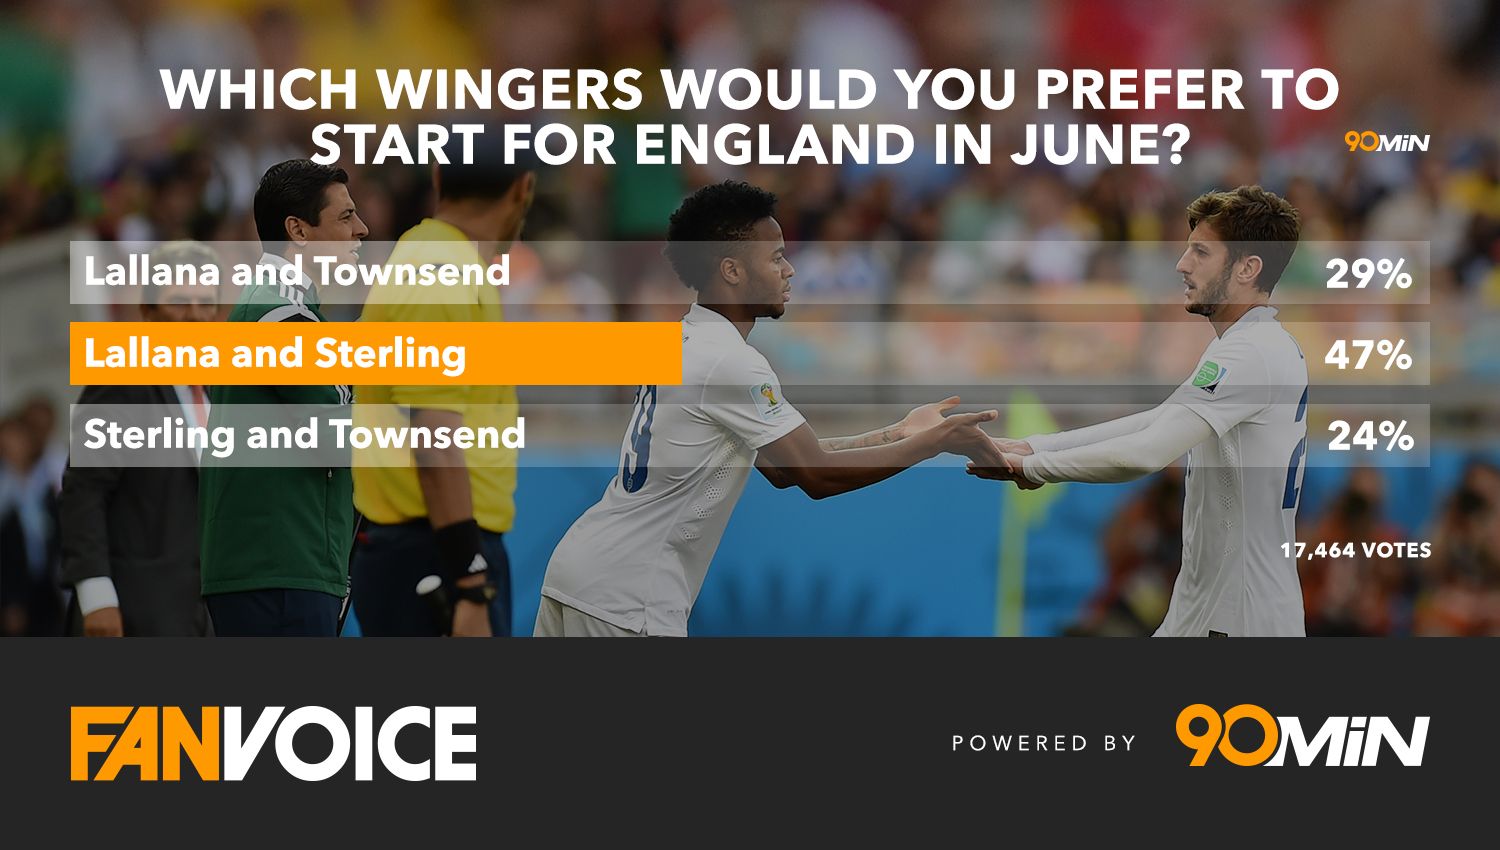 England wingers poll